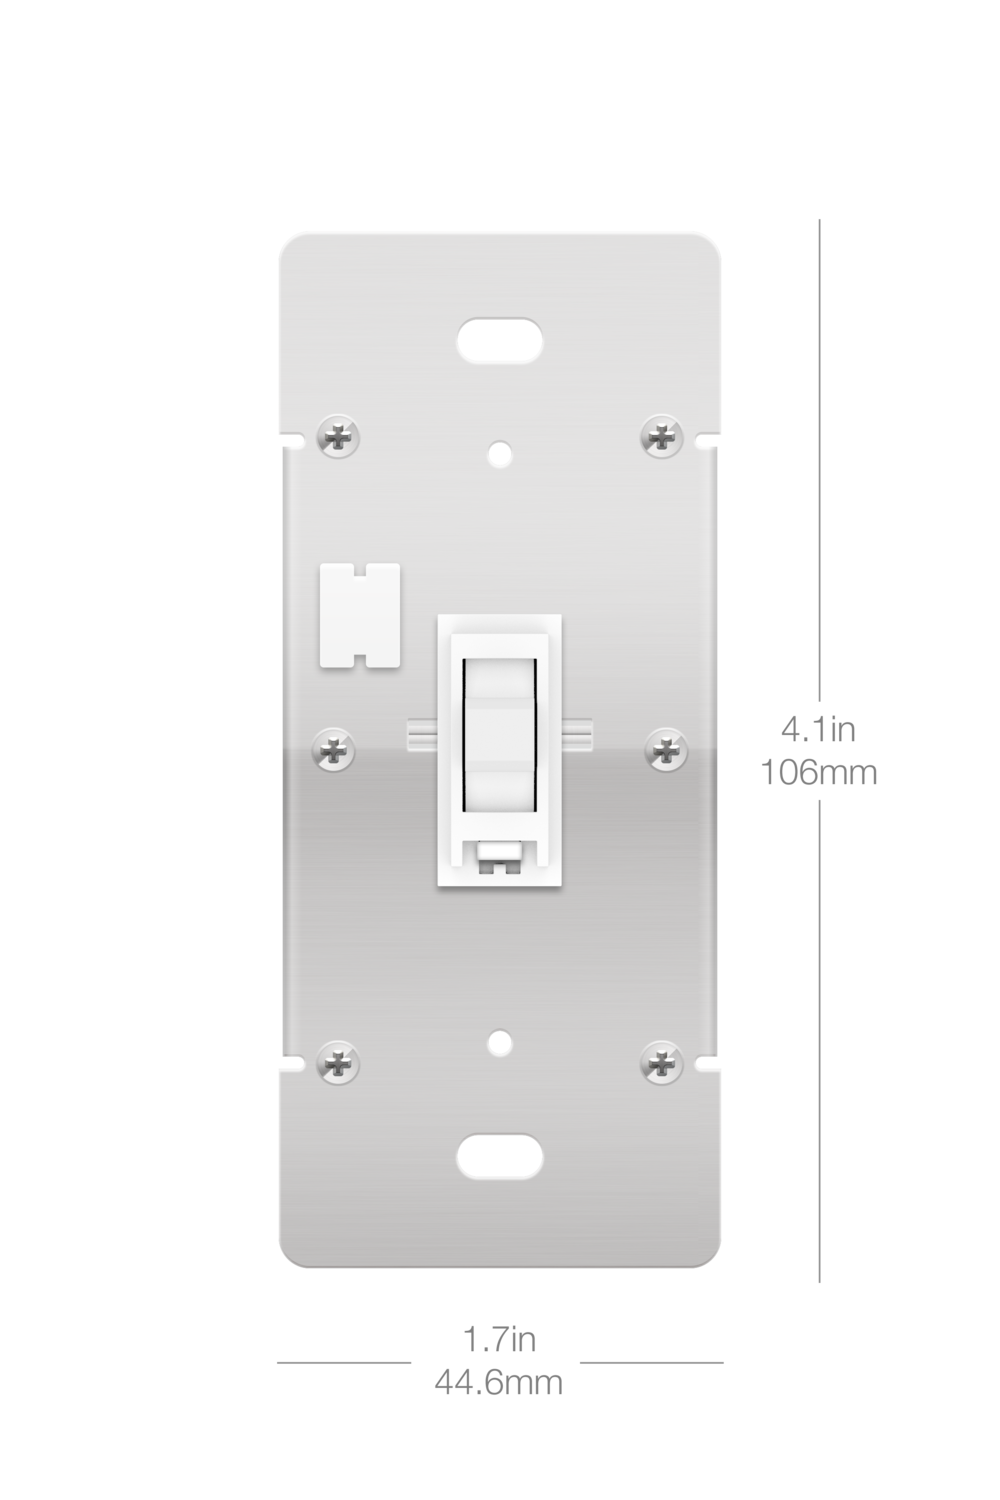 dimensions-toggle-switch-front.png